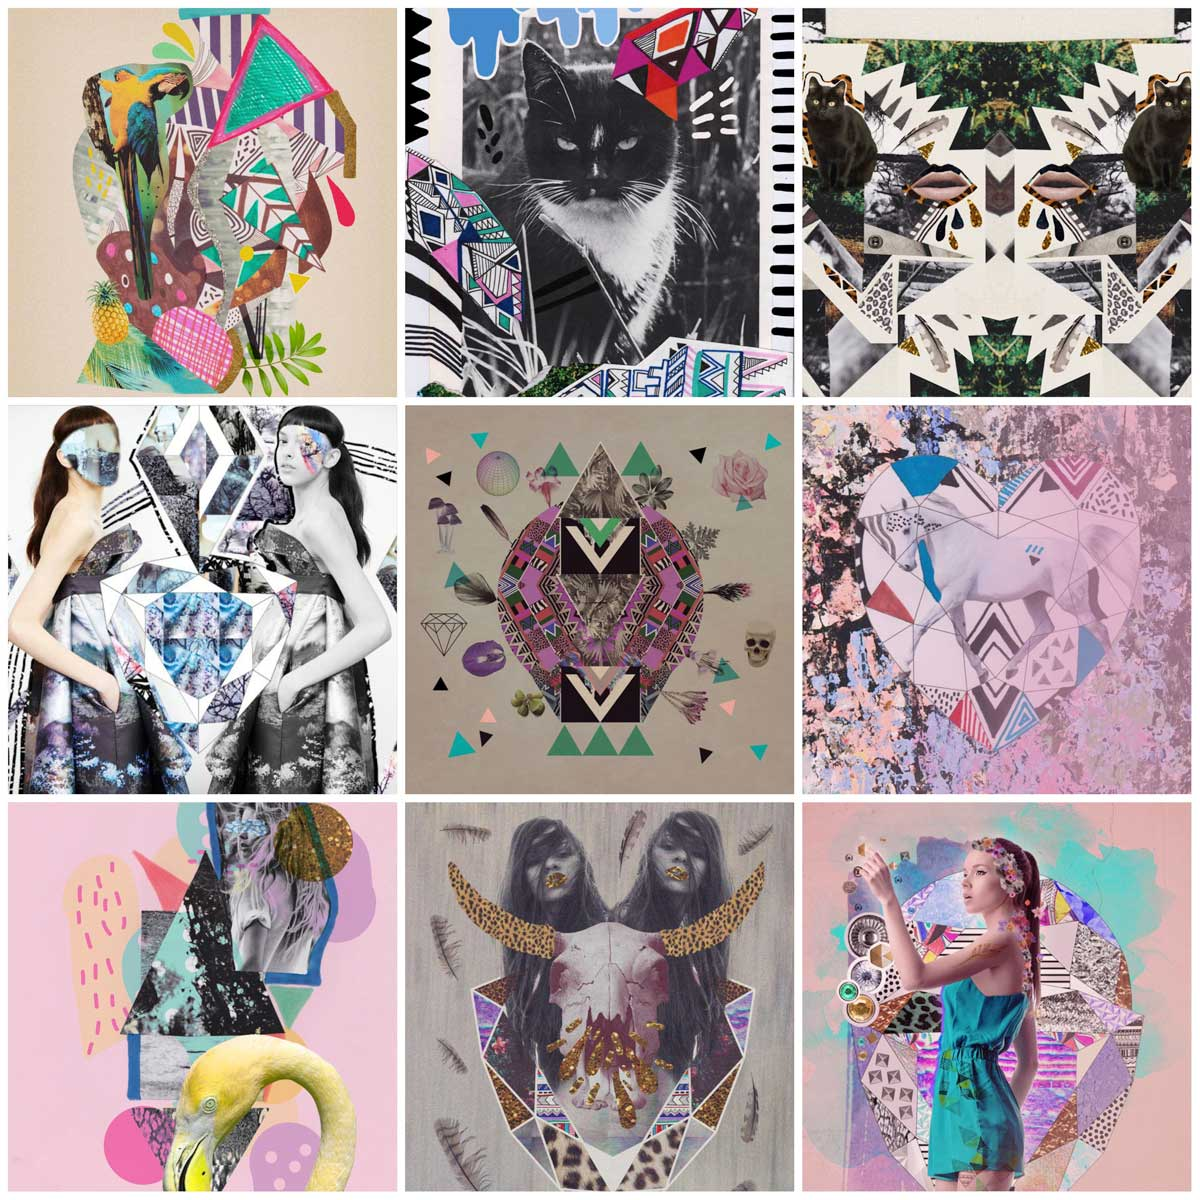 10 Examples Of Creative Mixed Media Art To Inspire You Vasare Nar Art Fashion Design Blog